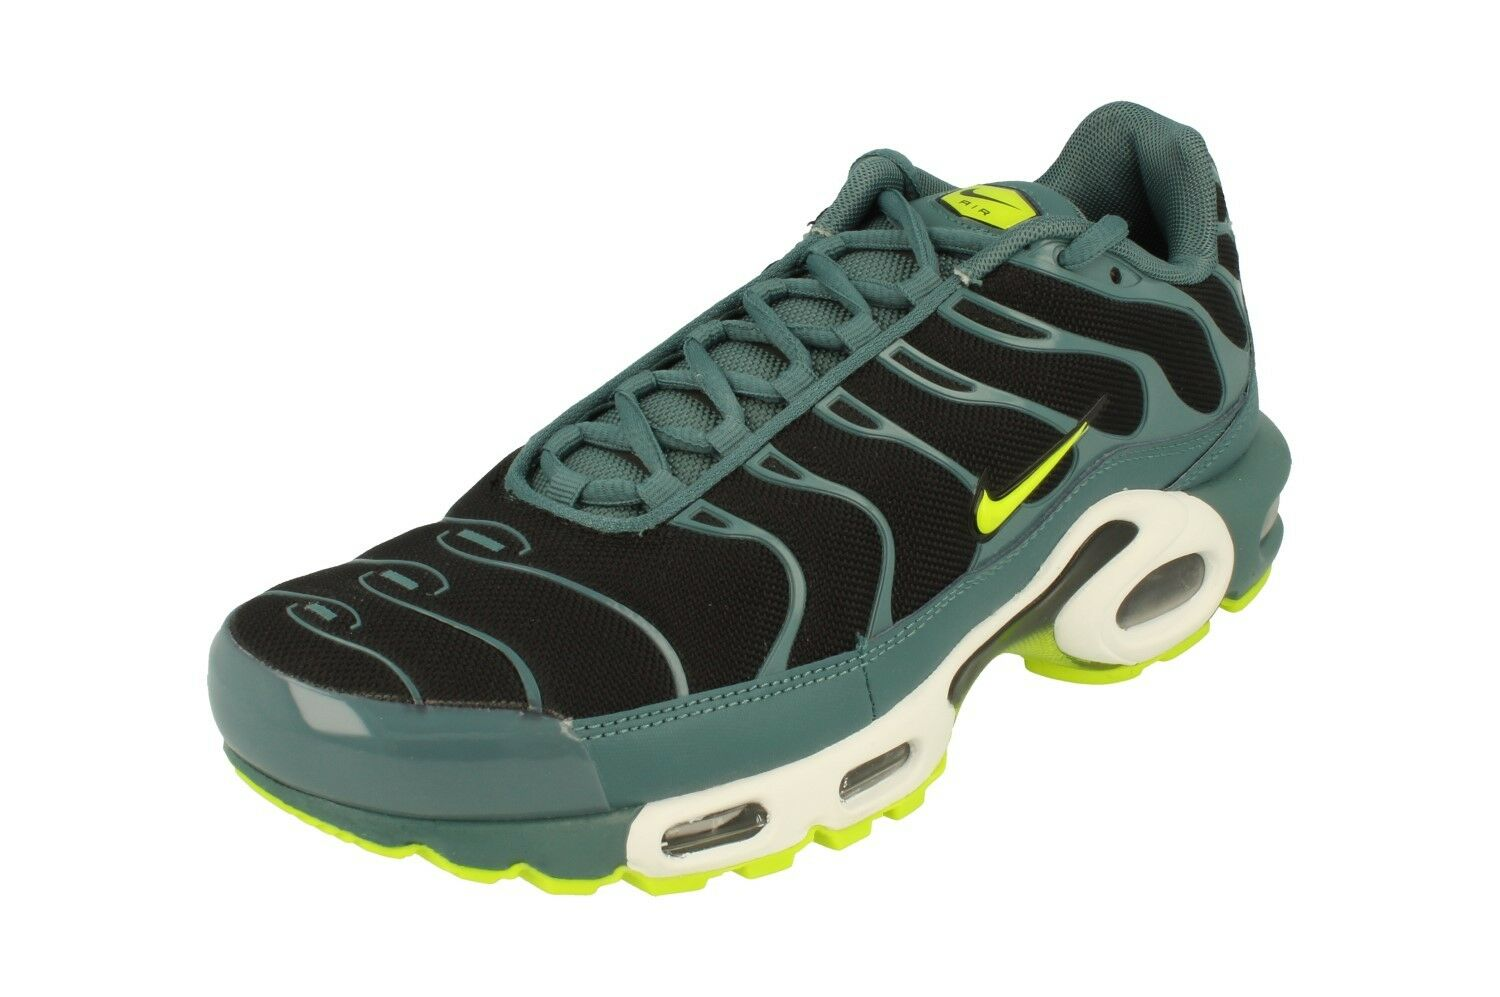 Nike Air Max Plus Plus Max Mens Running Trainers 852630 Sneakers Shoes 014 46dae6